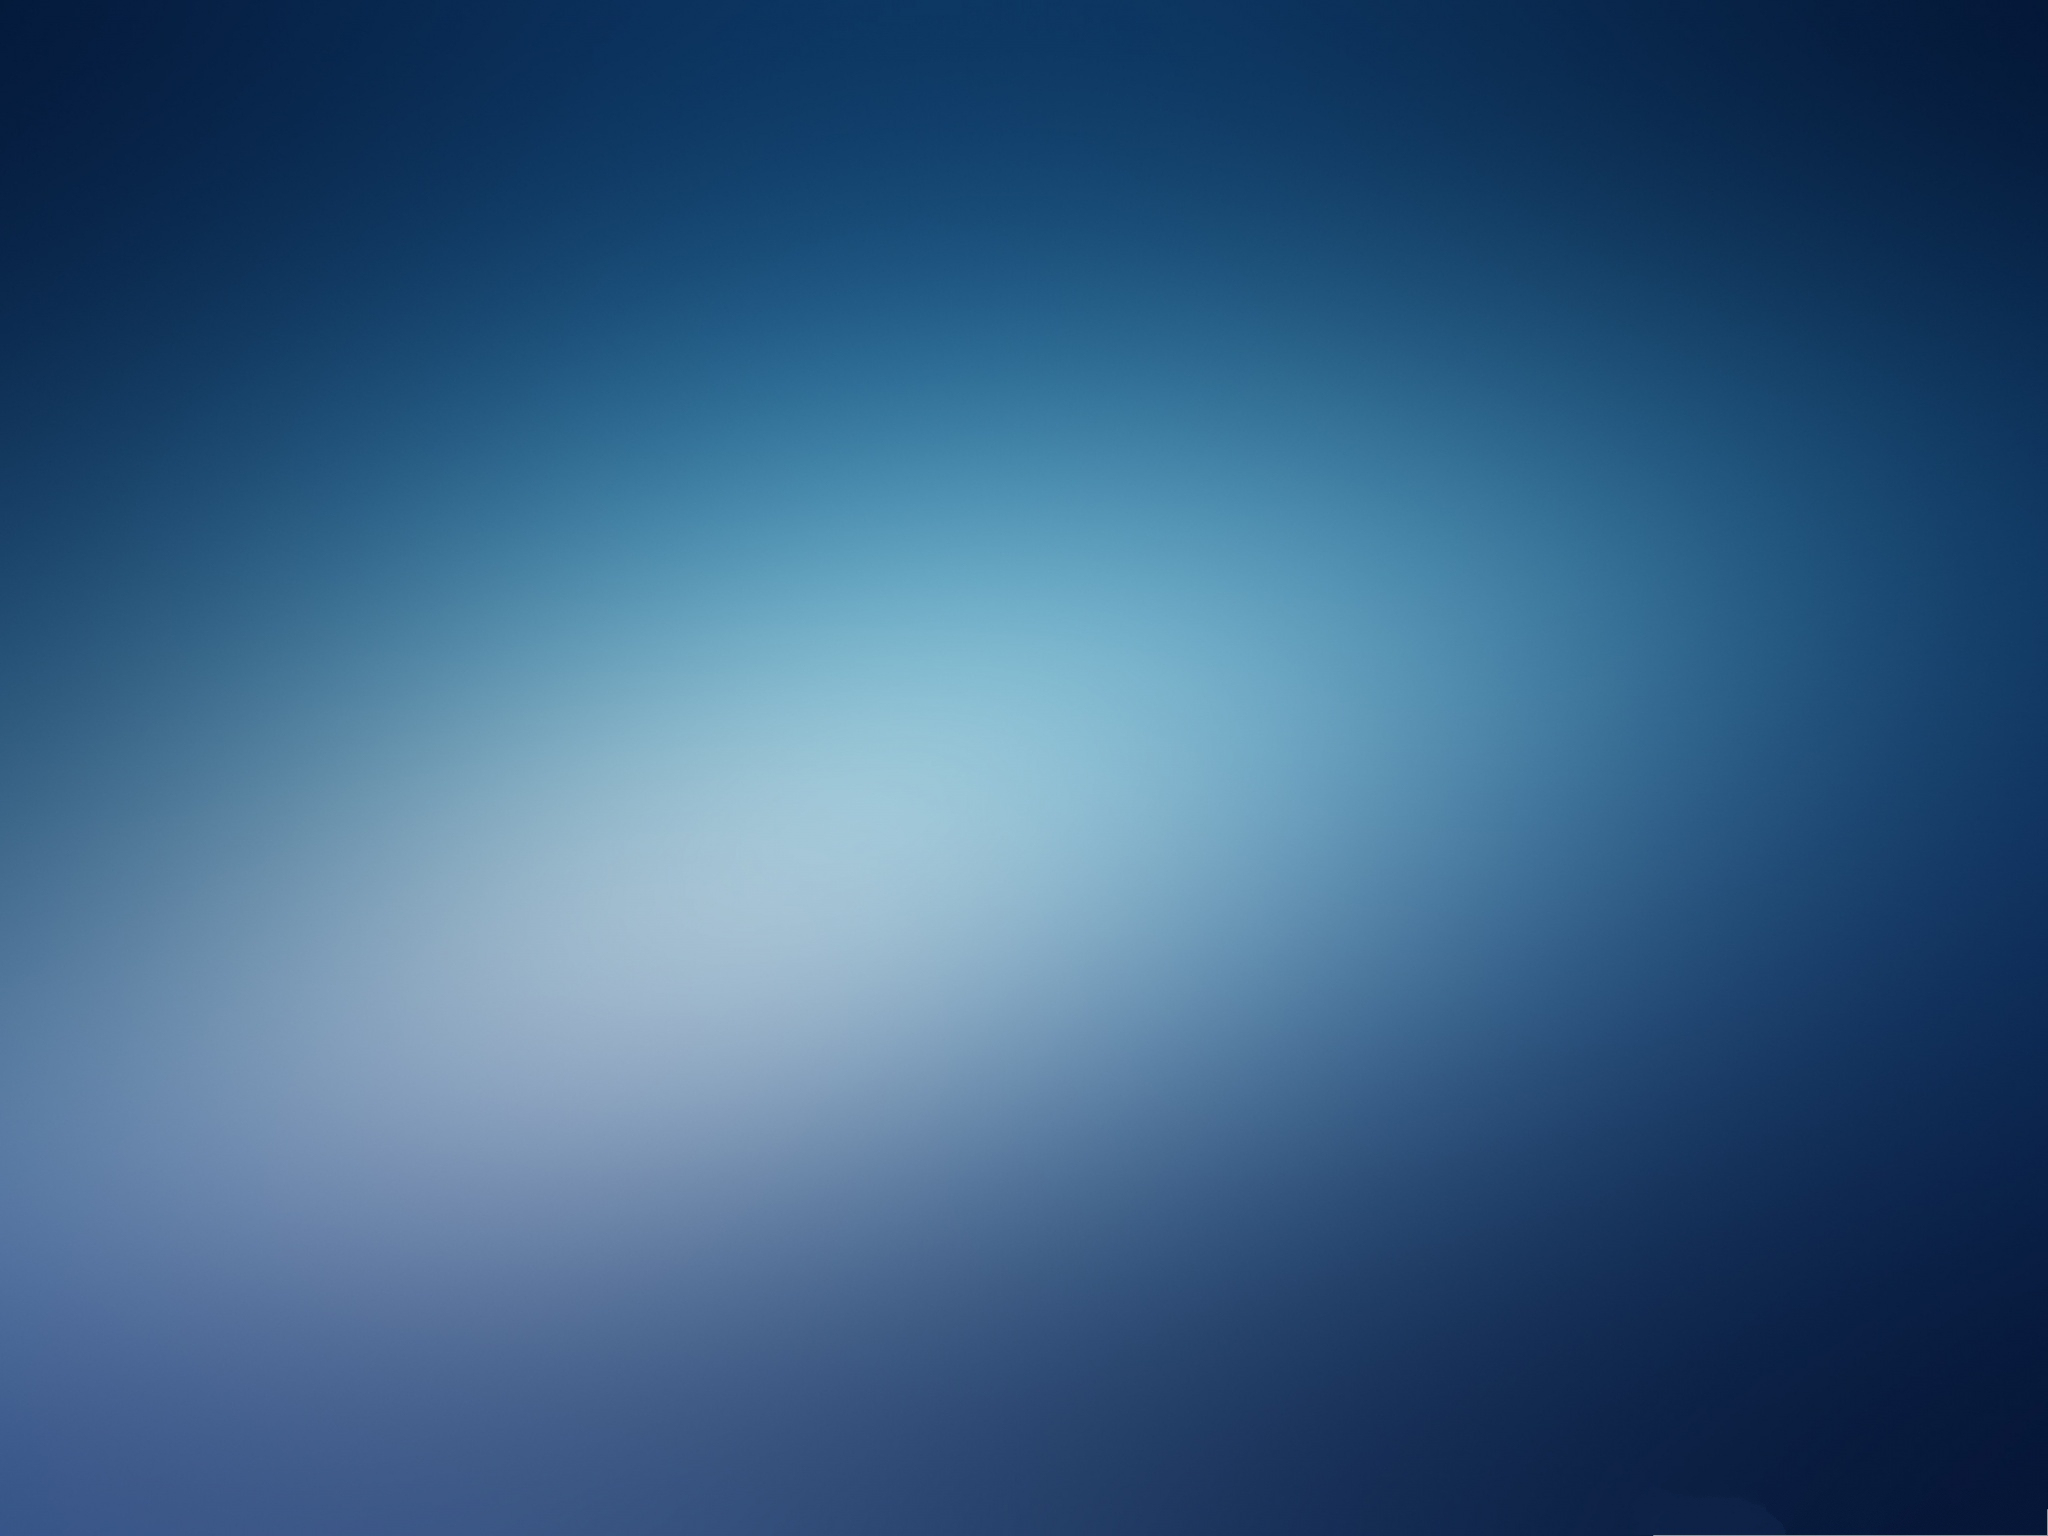 non blurry wallpapers for desktop - photo #15